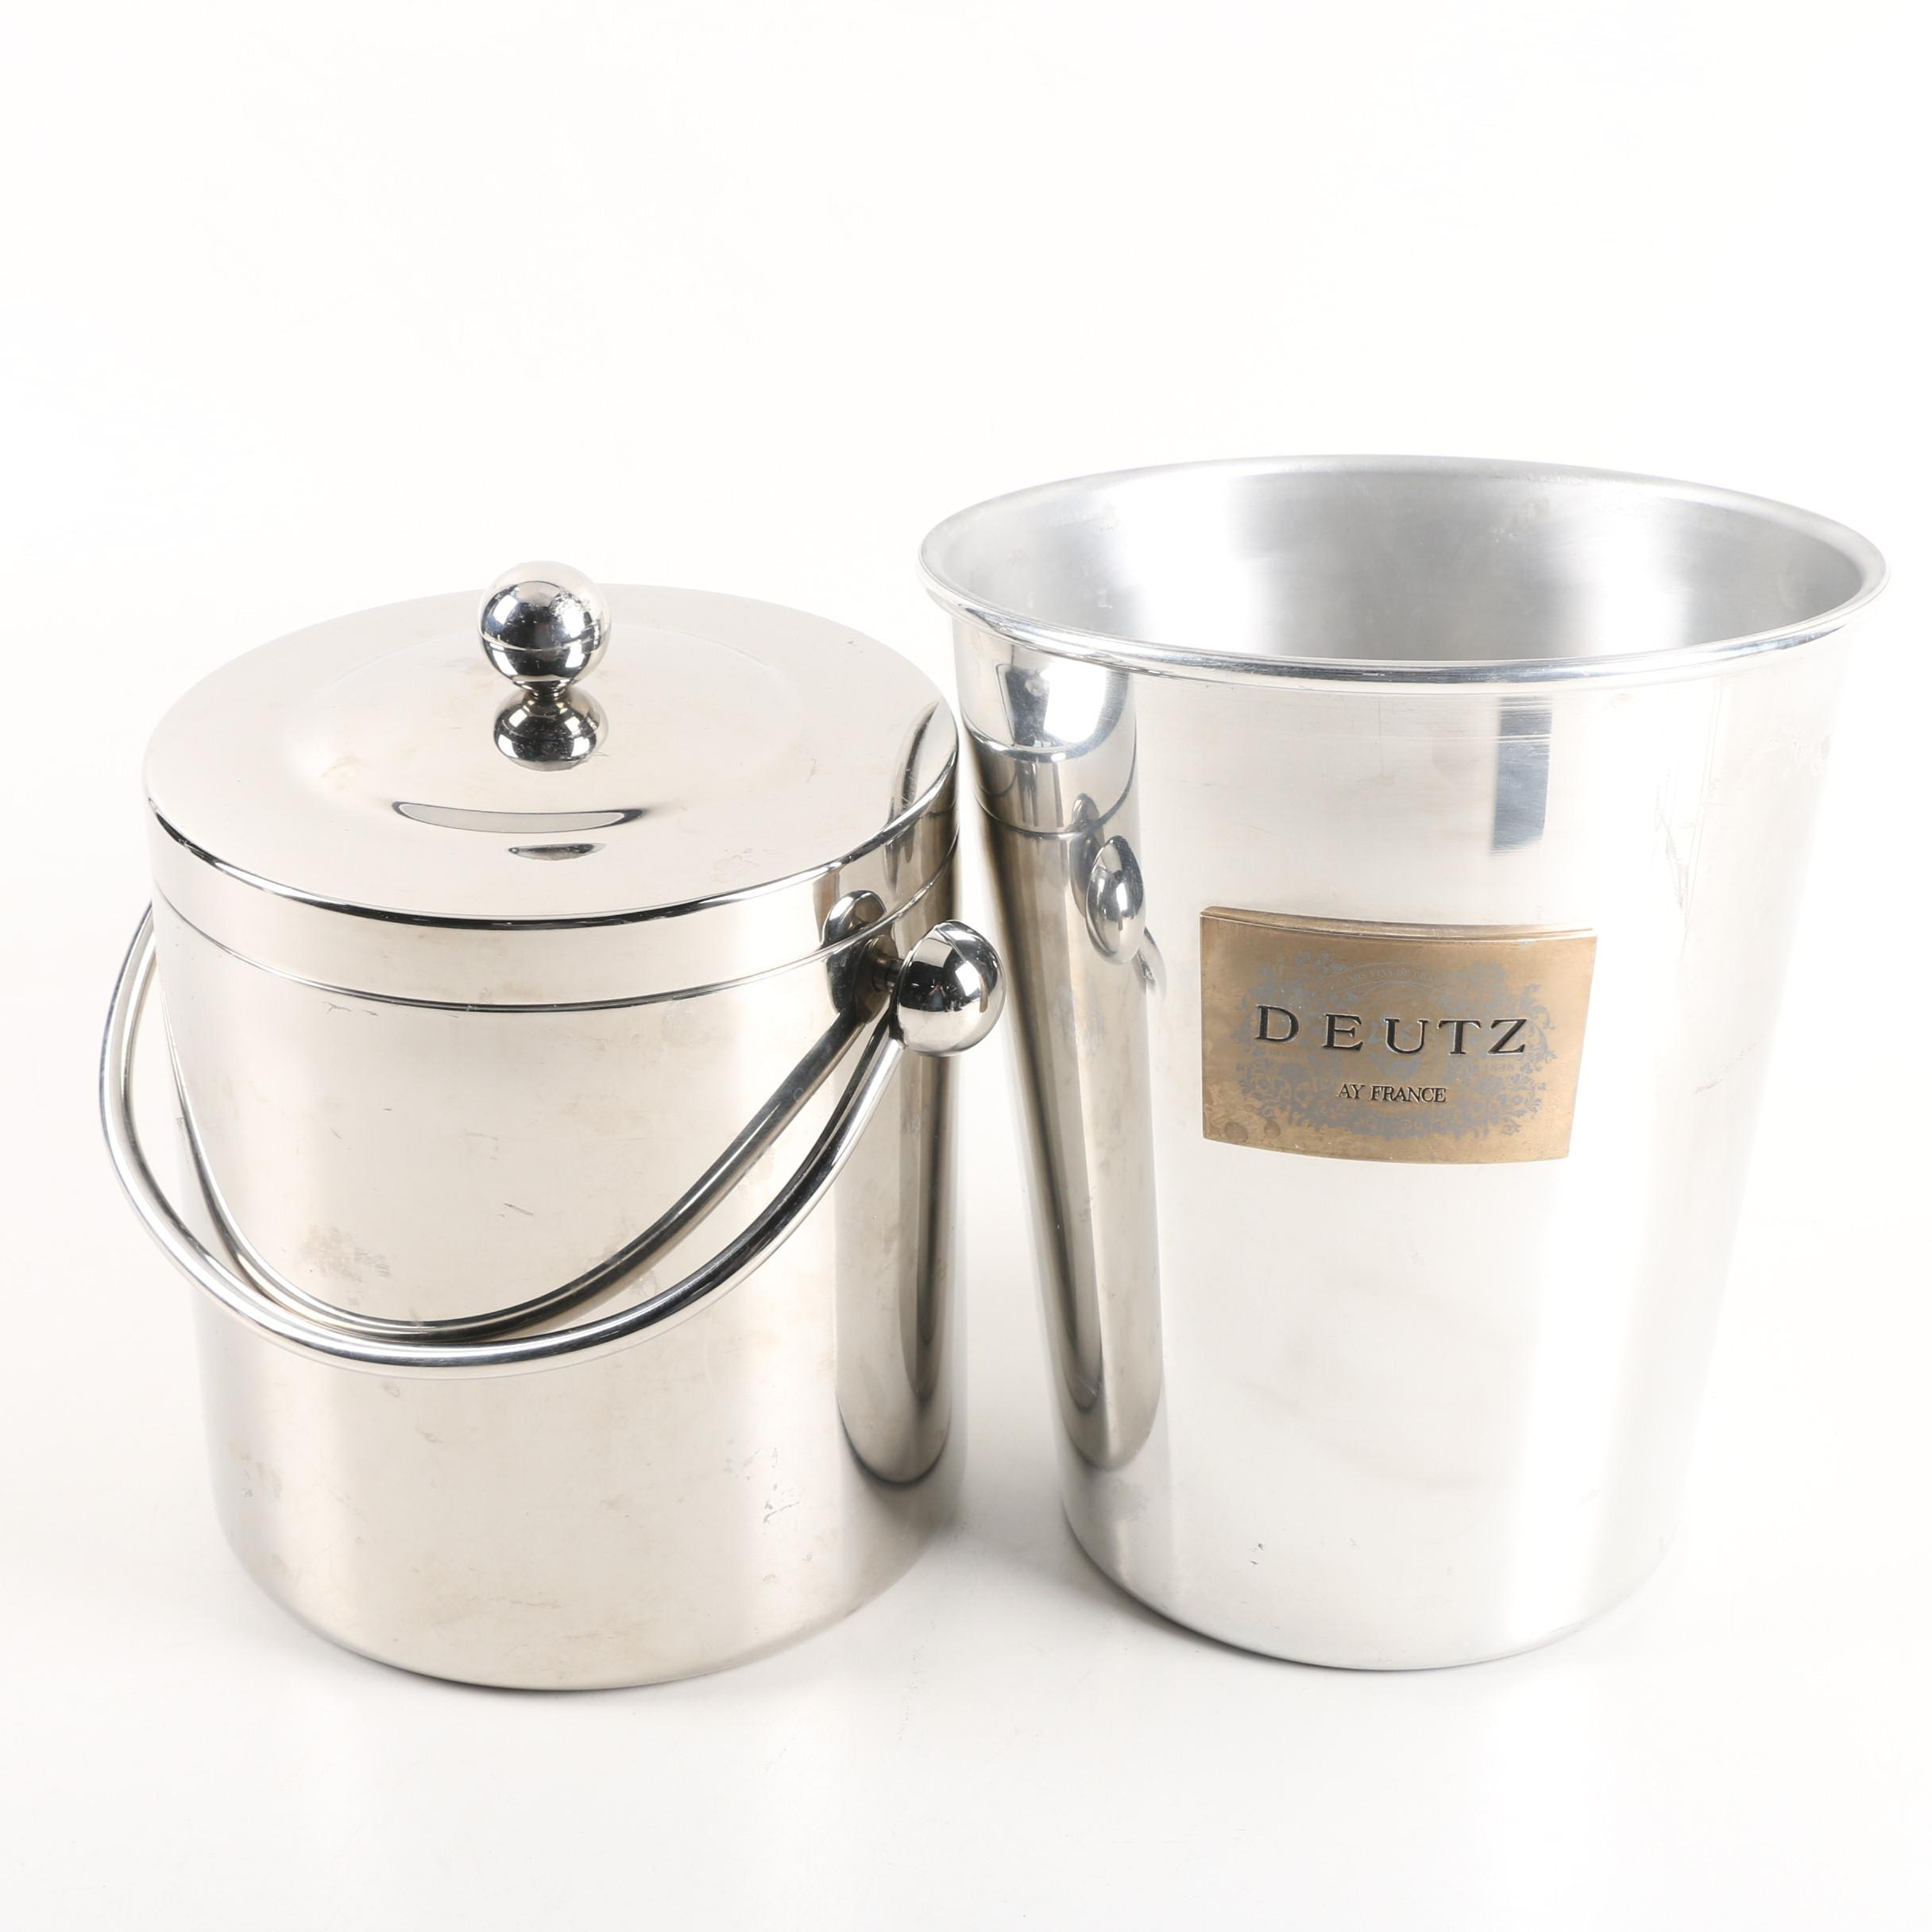 Deutz Aluminum and Marquis by Waterford Stainless Steel Ice Buckets